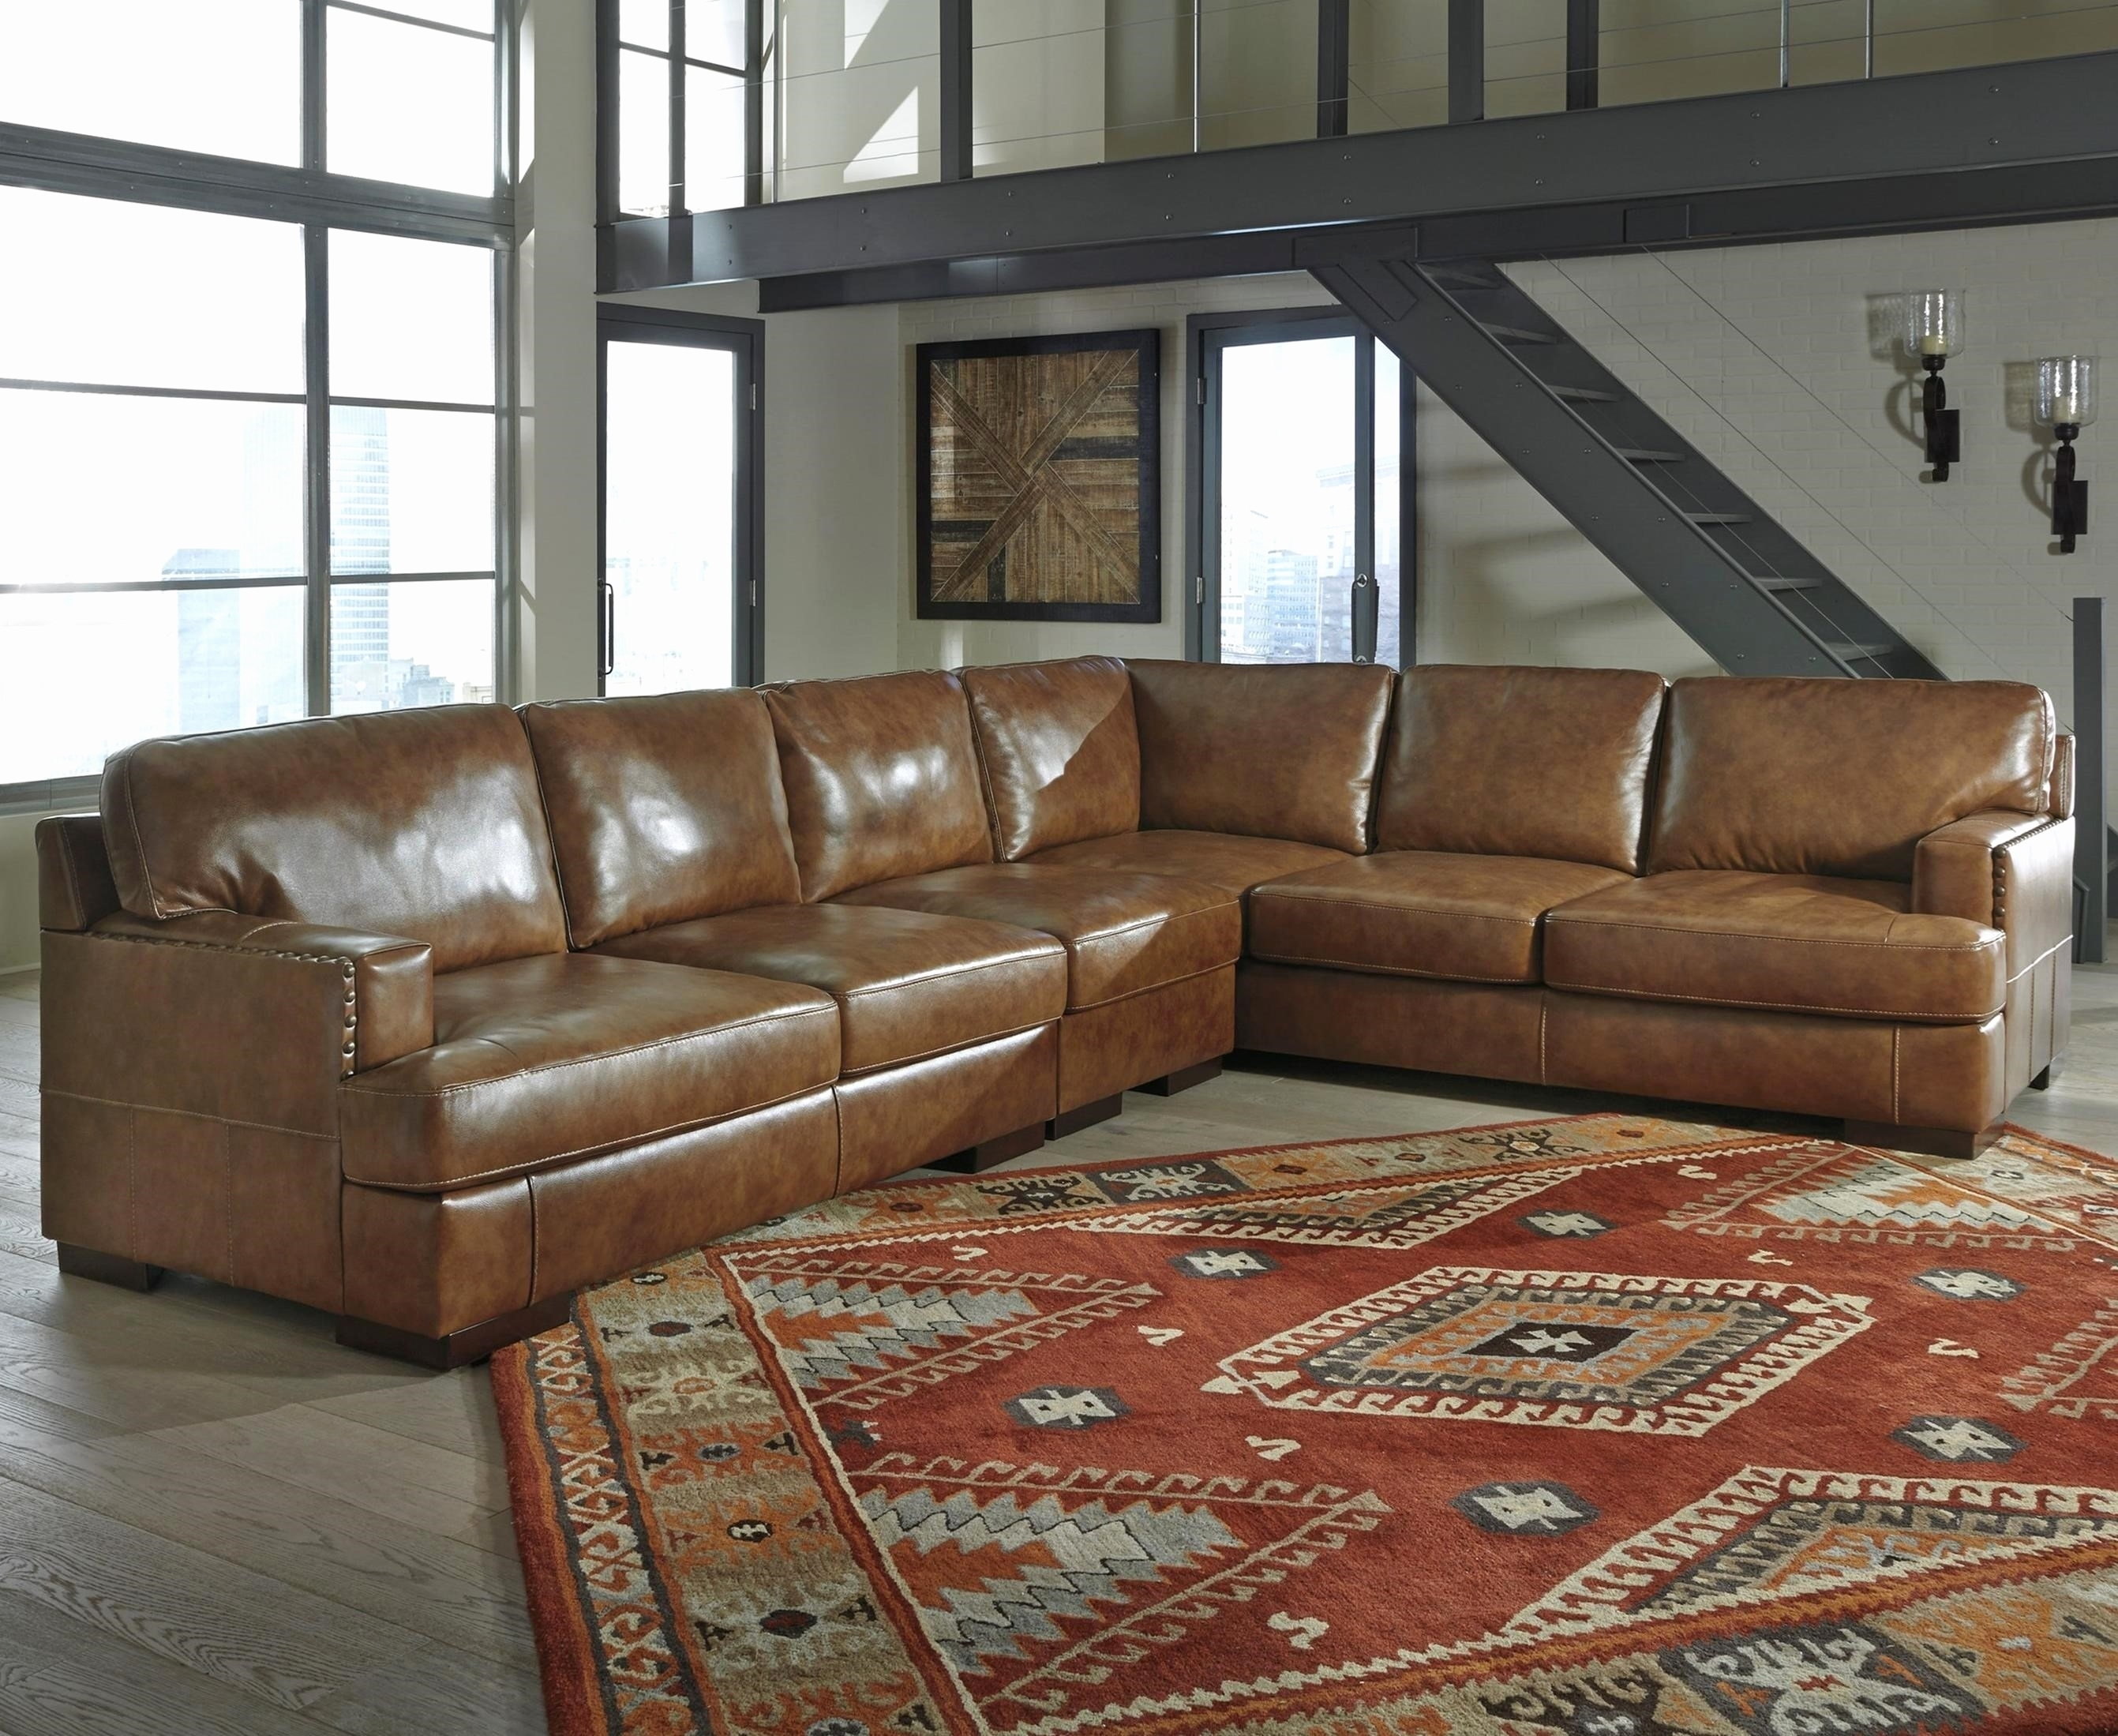 Lovely 3 Piece Corner Sectional Sofa 2018 – Couches And Sofas Ideas Regarding Grand Furniture Sectional Sofas (View 8 of 10)